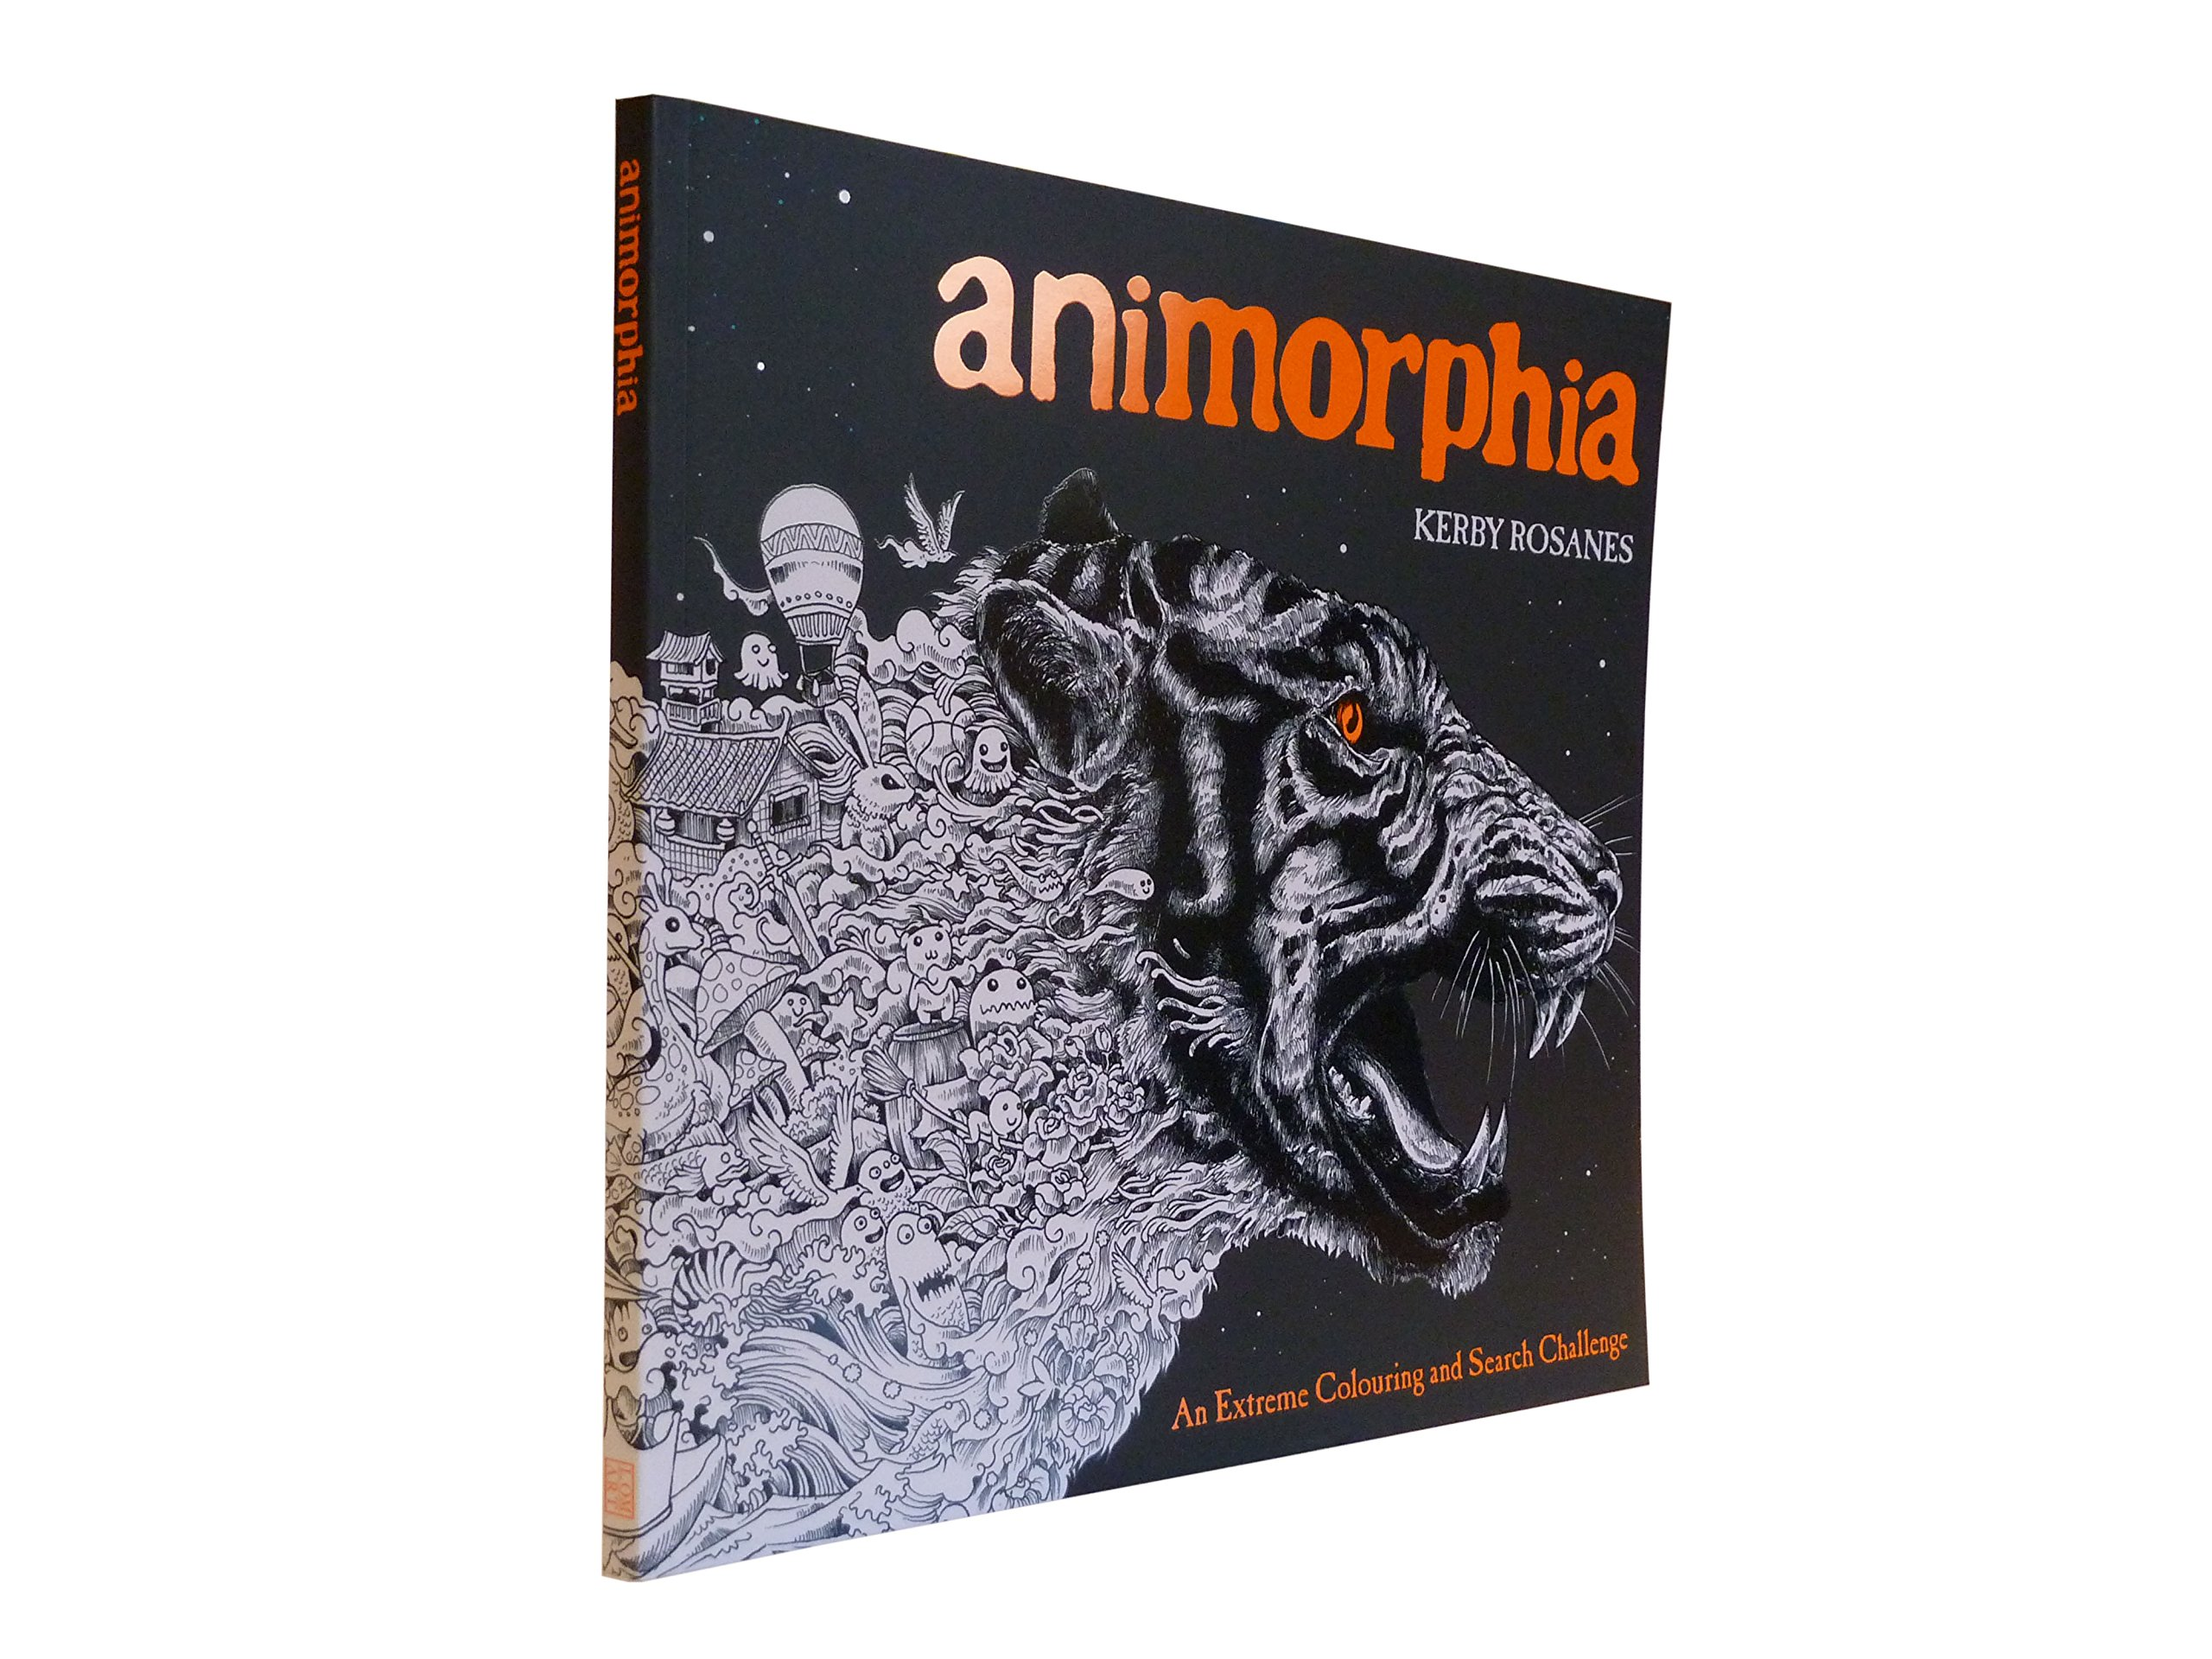 Animorphia an extreme coloring and search challenge by kerby rosanes - Animorphia An Extreme Colouring And Search Challenge Amazon Co Uk Kerby Rosanes 9781910552070 Books